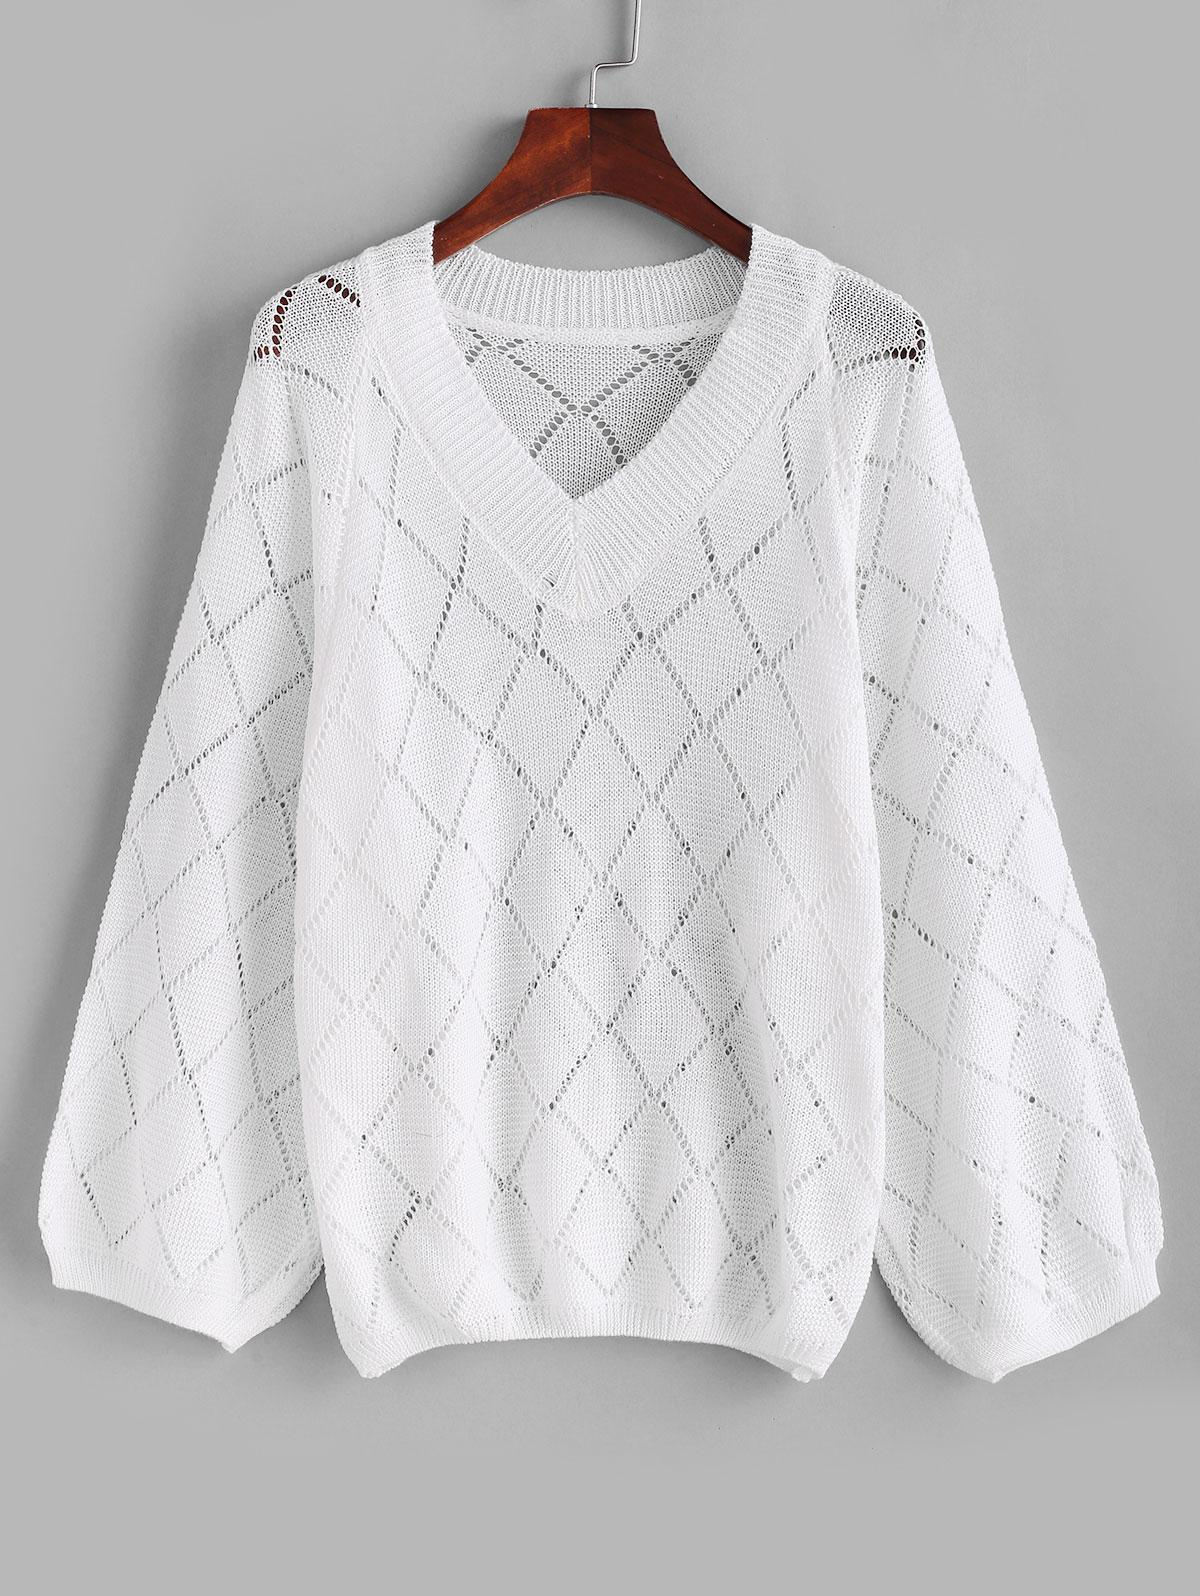 V Neck Openwork Raglan Sleeve Jumper Sweater